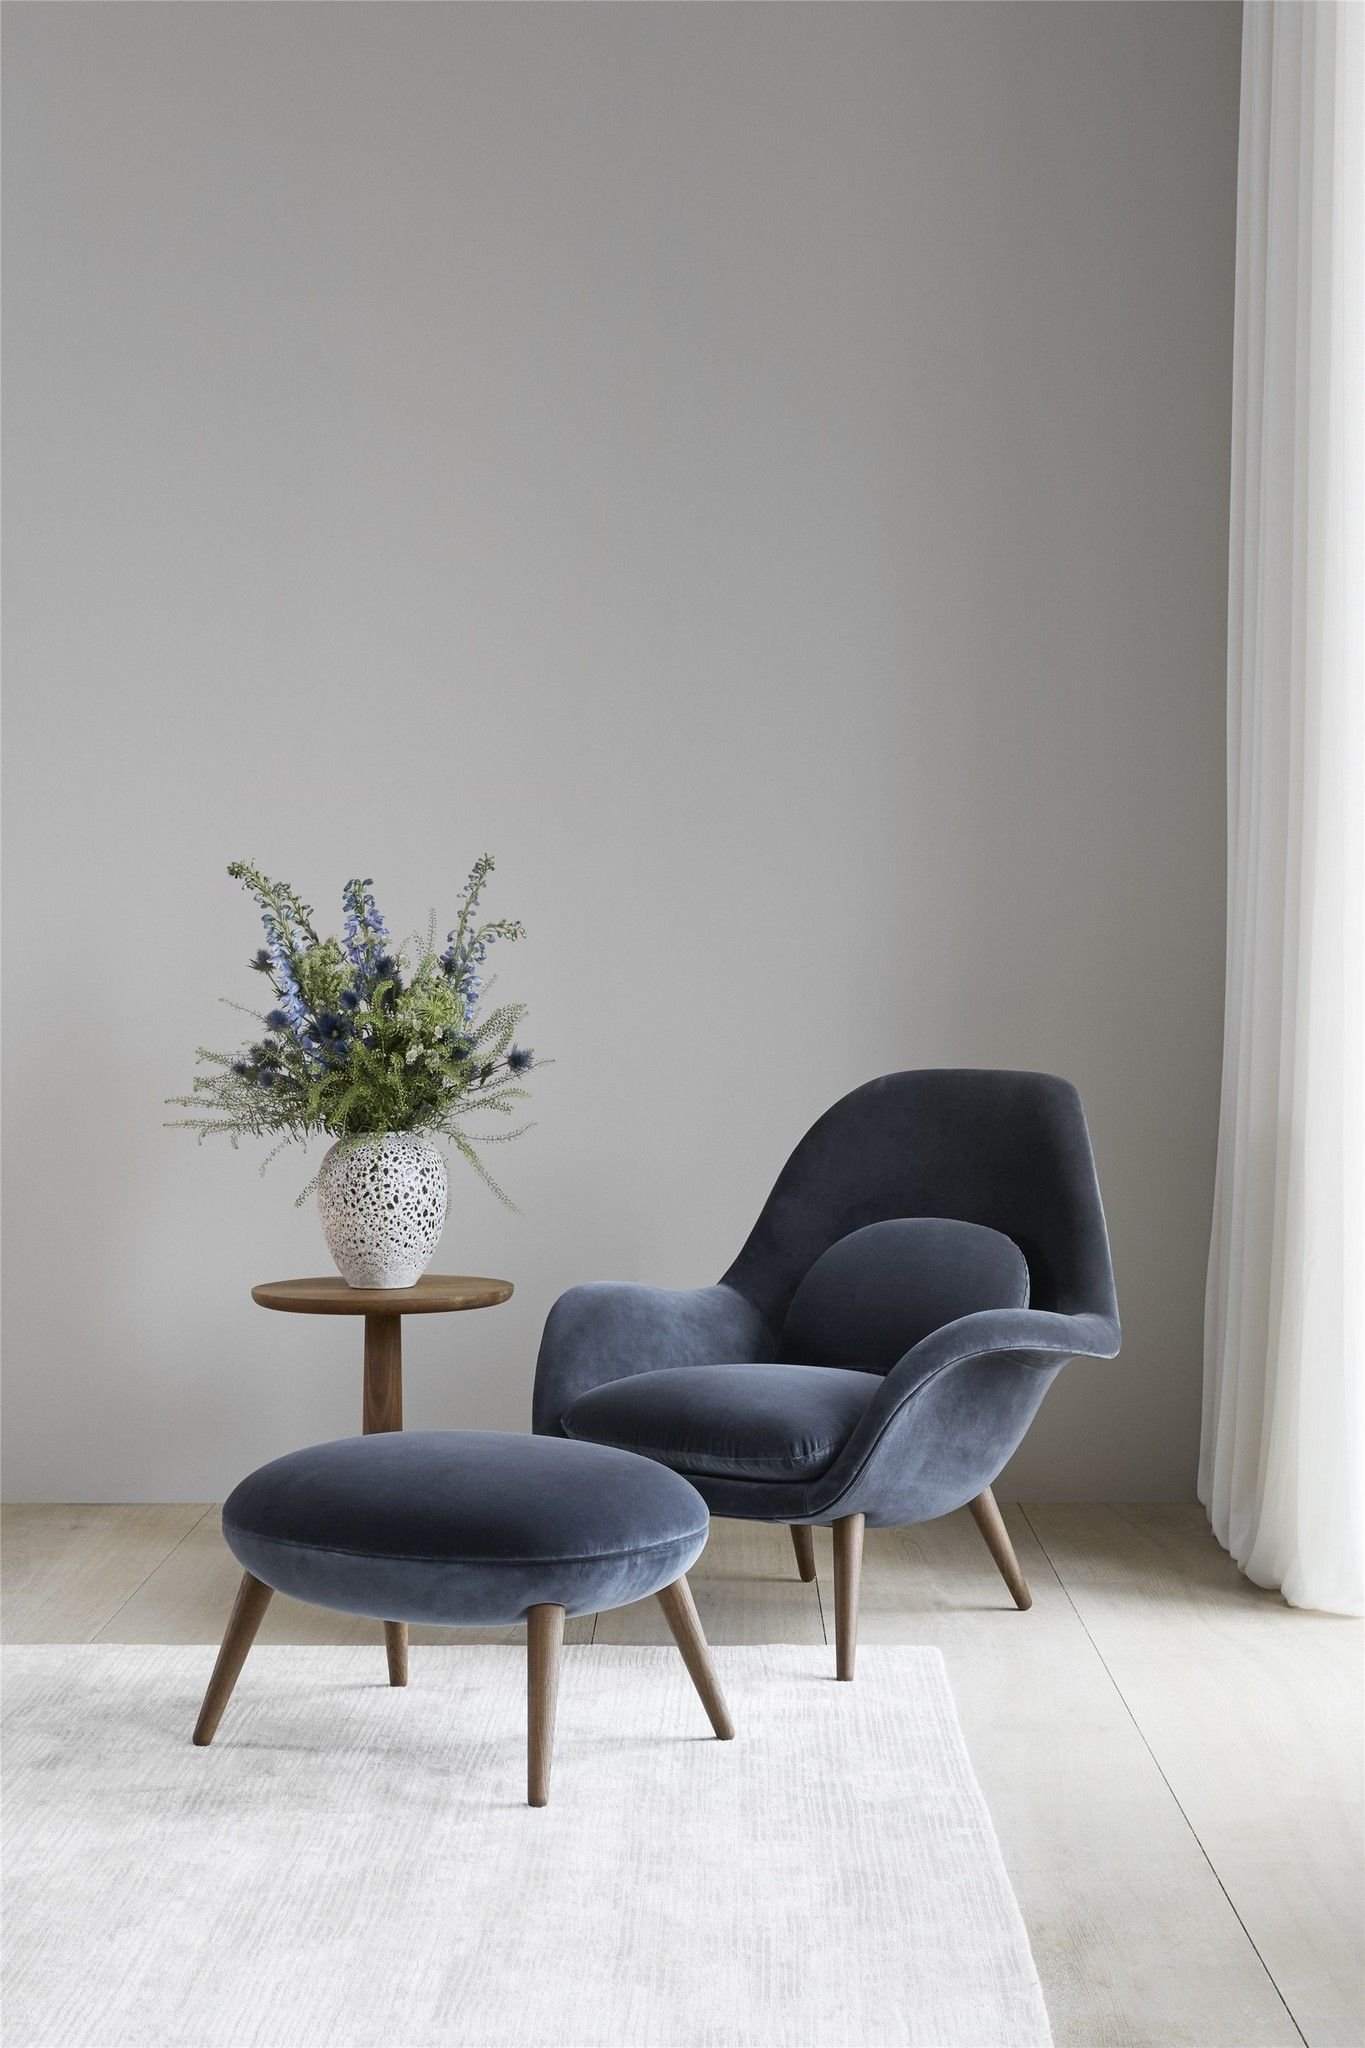 Fredericia Swoon Lounge Chair Mid Century Modern Lounge Chair In 2021 Lounge Chairs Living Room Swoon Lounge Chair Fredericia Furniture